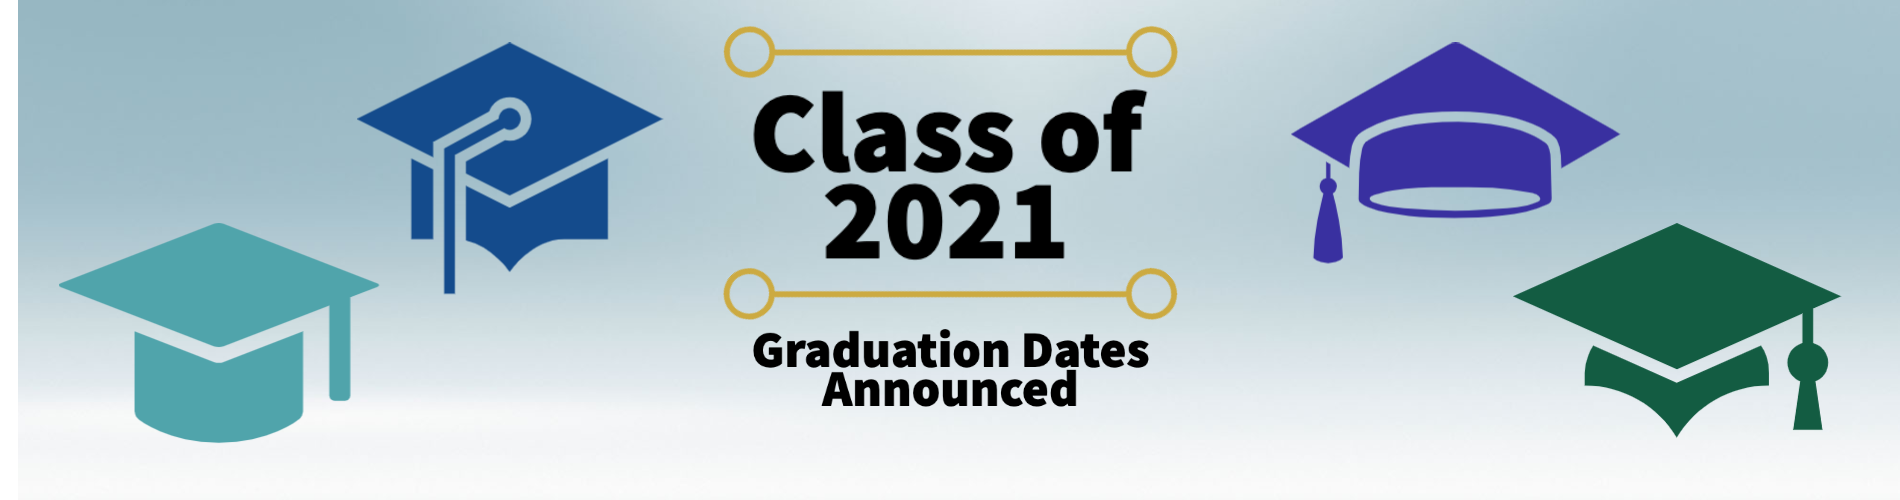 Class of 2021 Graduation Dates Announced